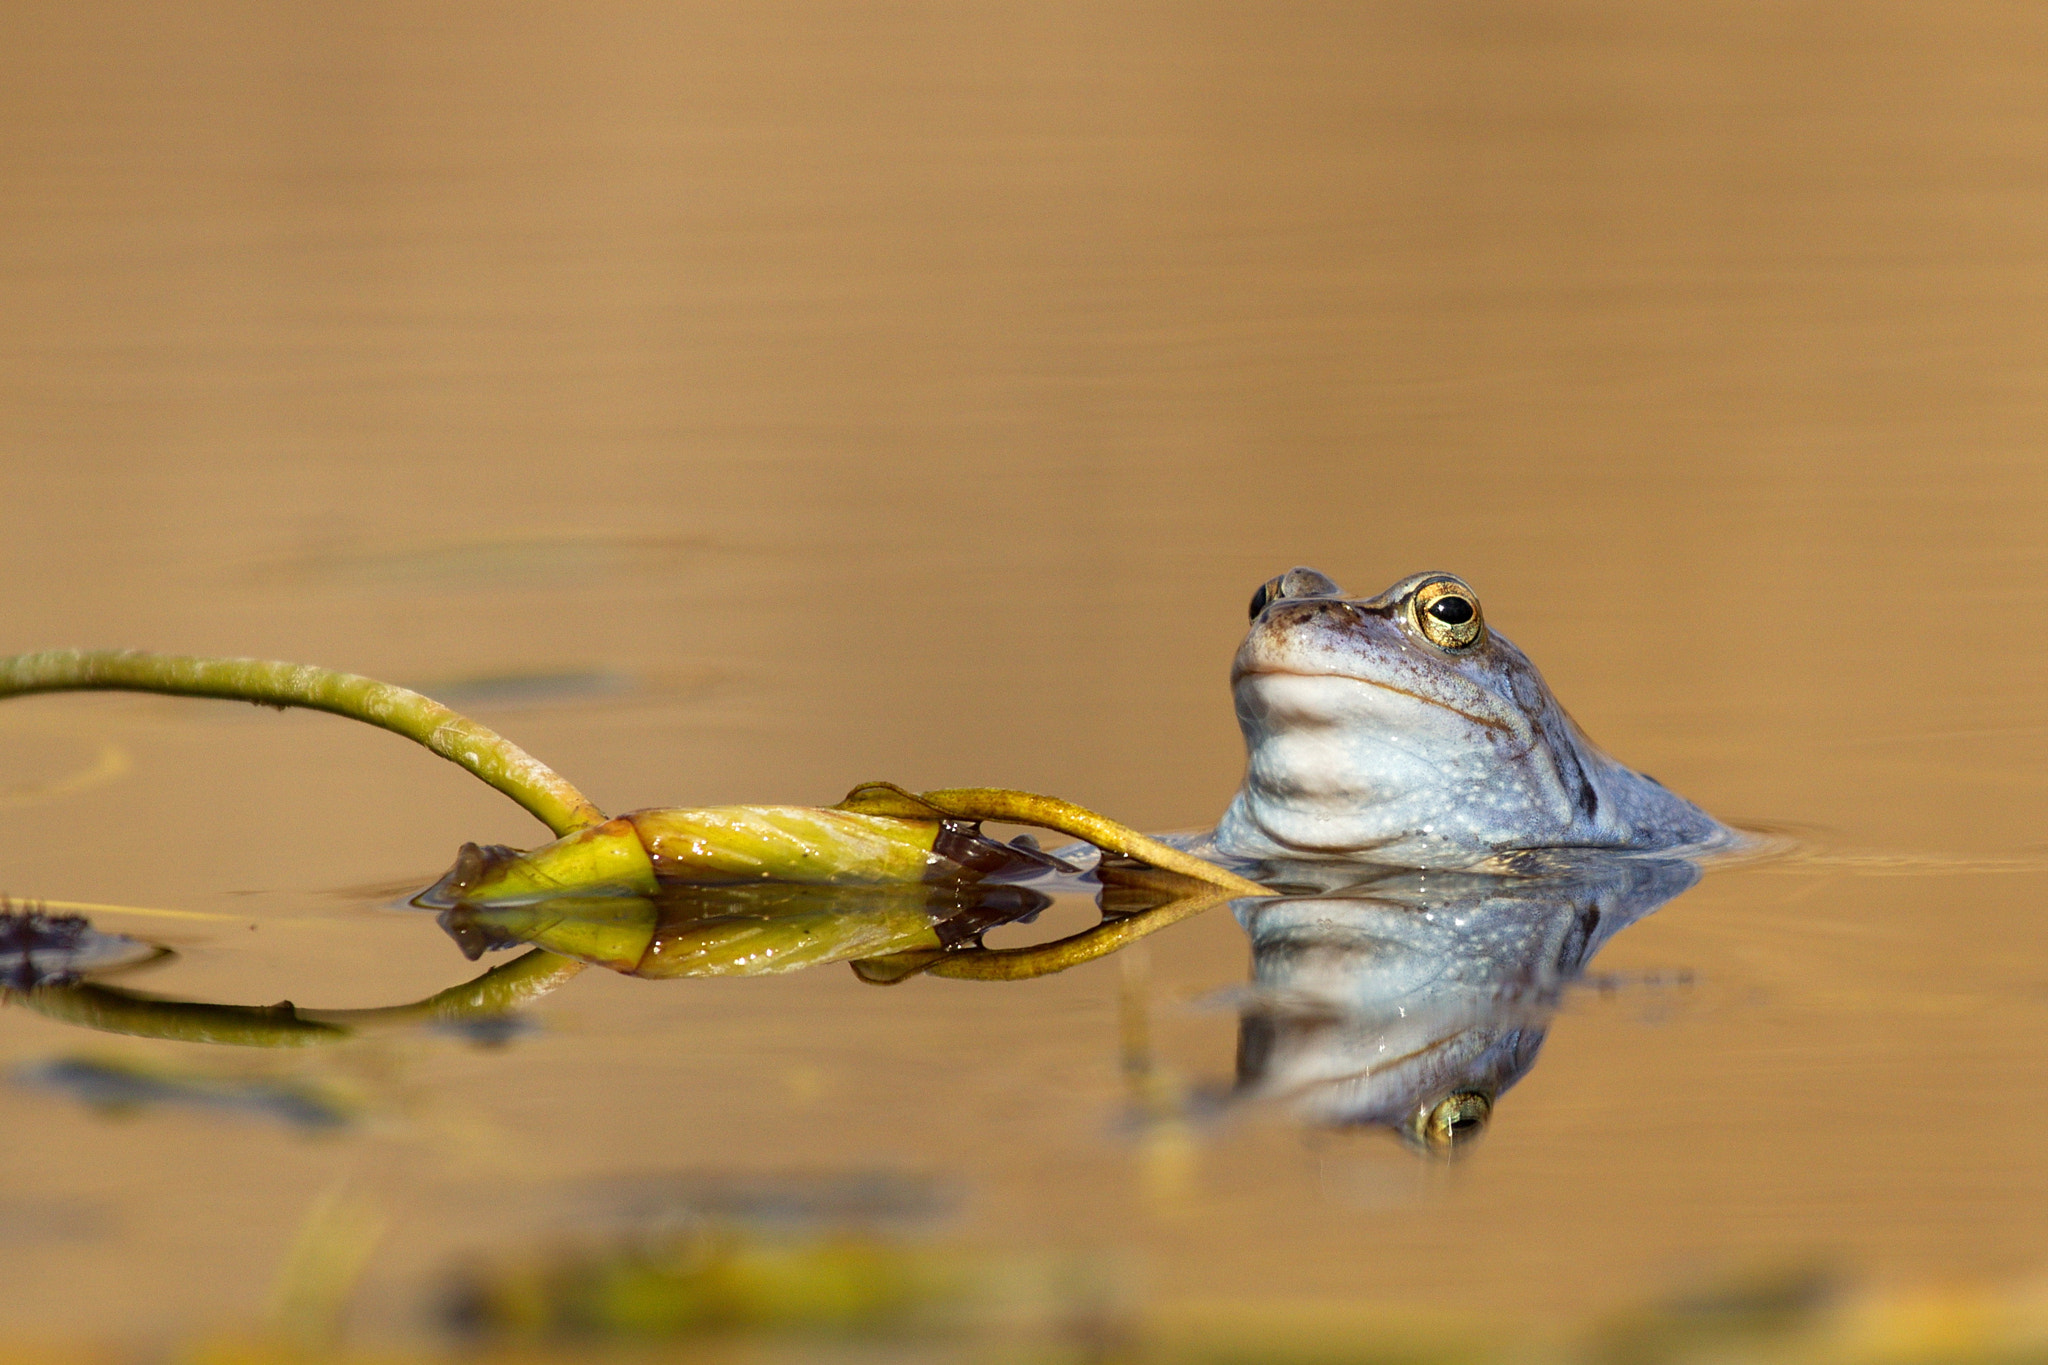 Photograph Moor frog by Bernard Stam on 500px